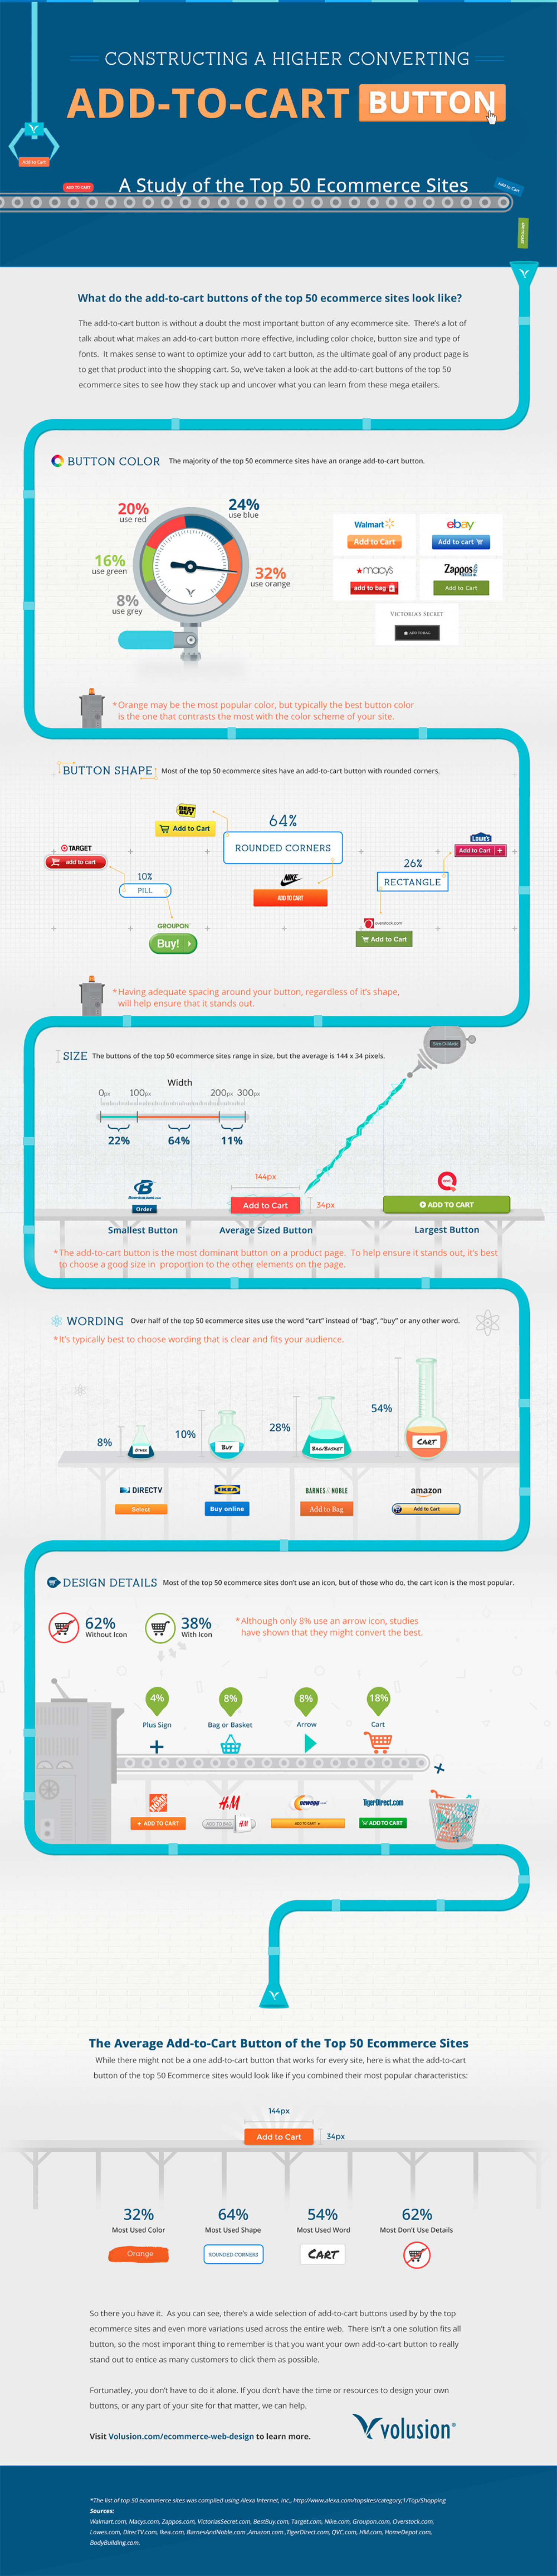 Constructing a Higher Converting Add-to-Cart Button Infographic